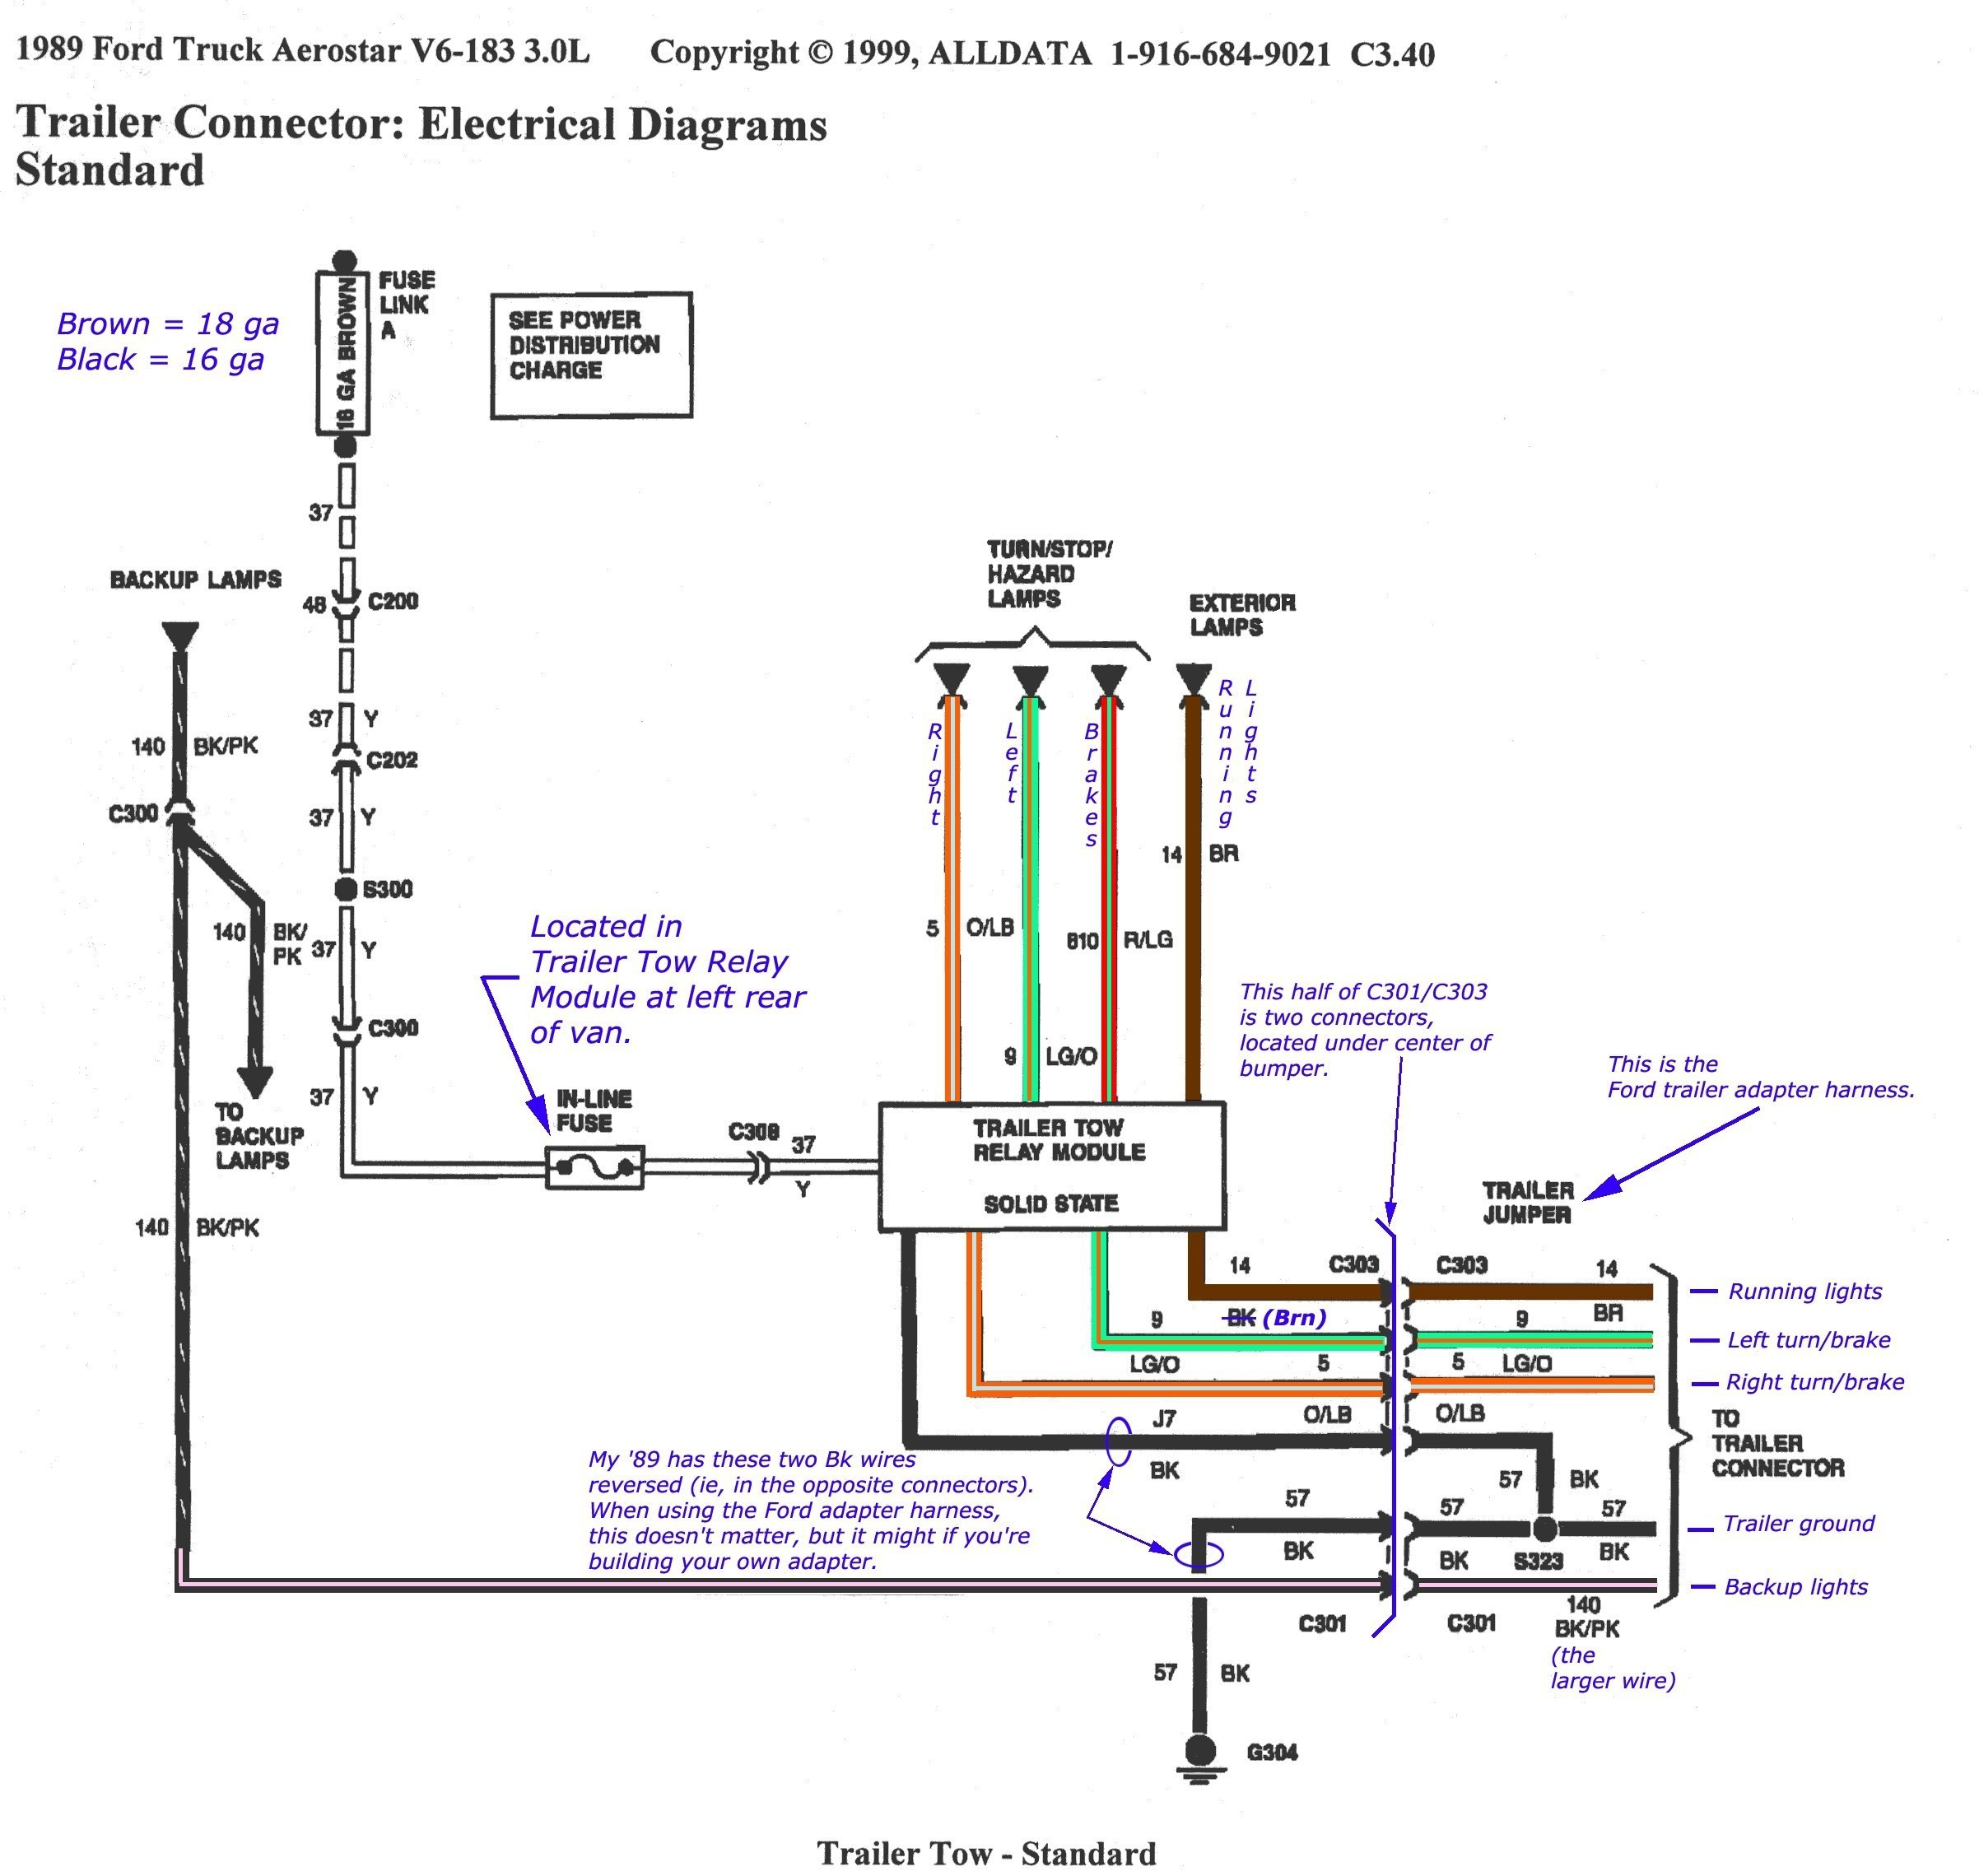 Low Air Buzzer Circuit Diagram Wire Data Schema Wiring Freightliner Amu Valve Management Rh Banyan Palace Com Arduino